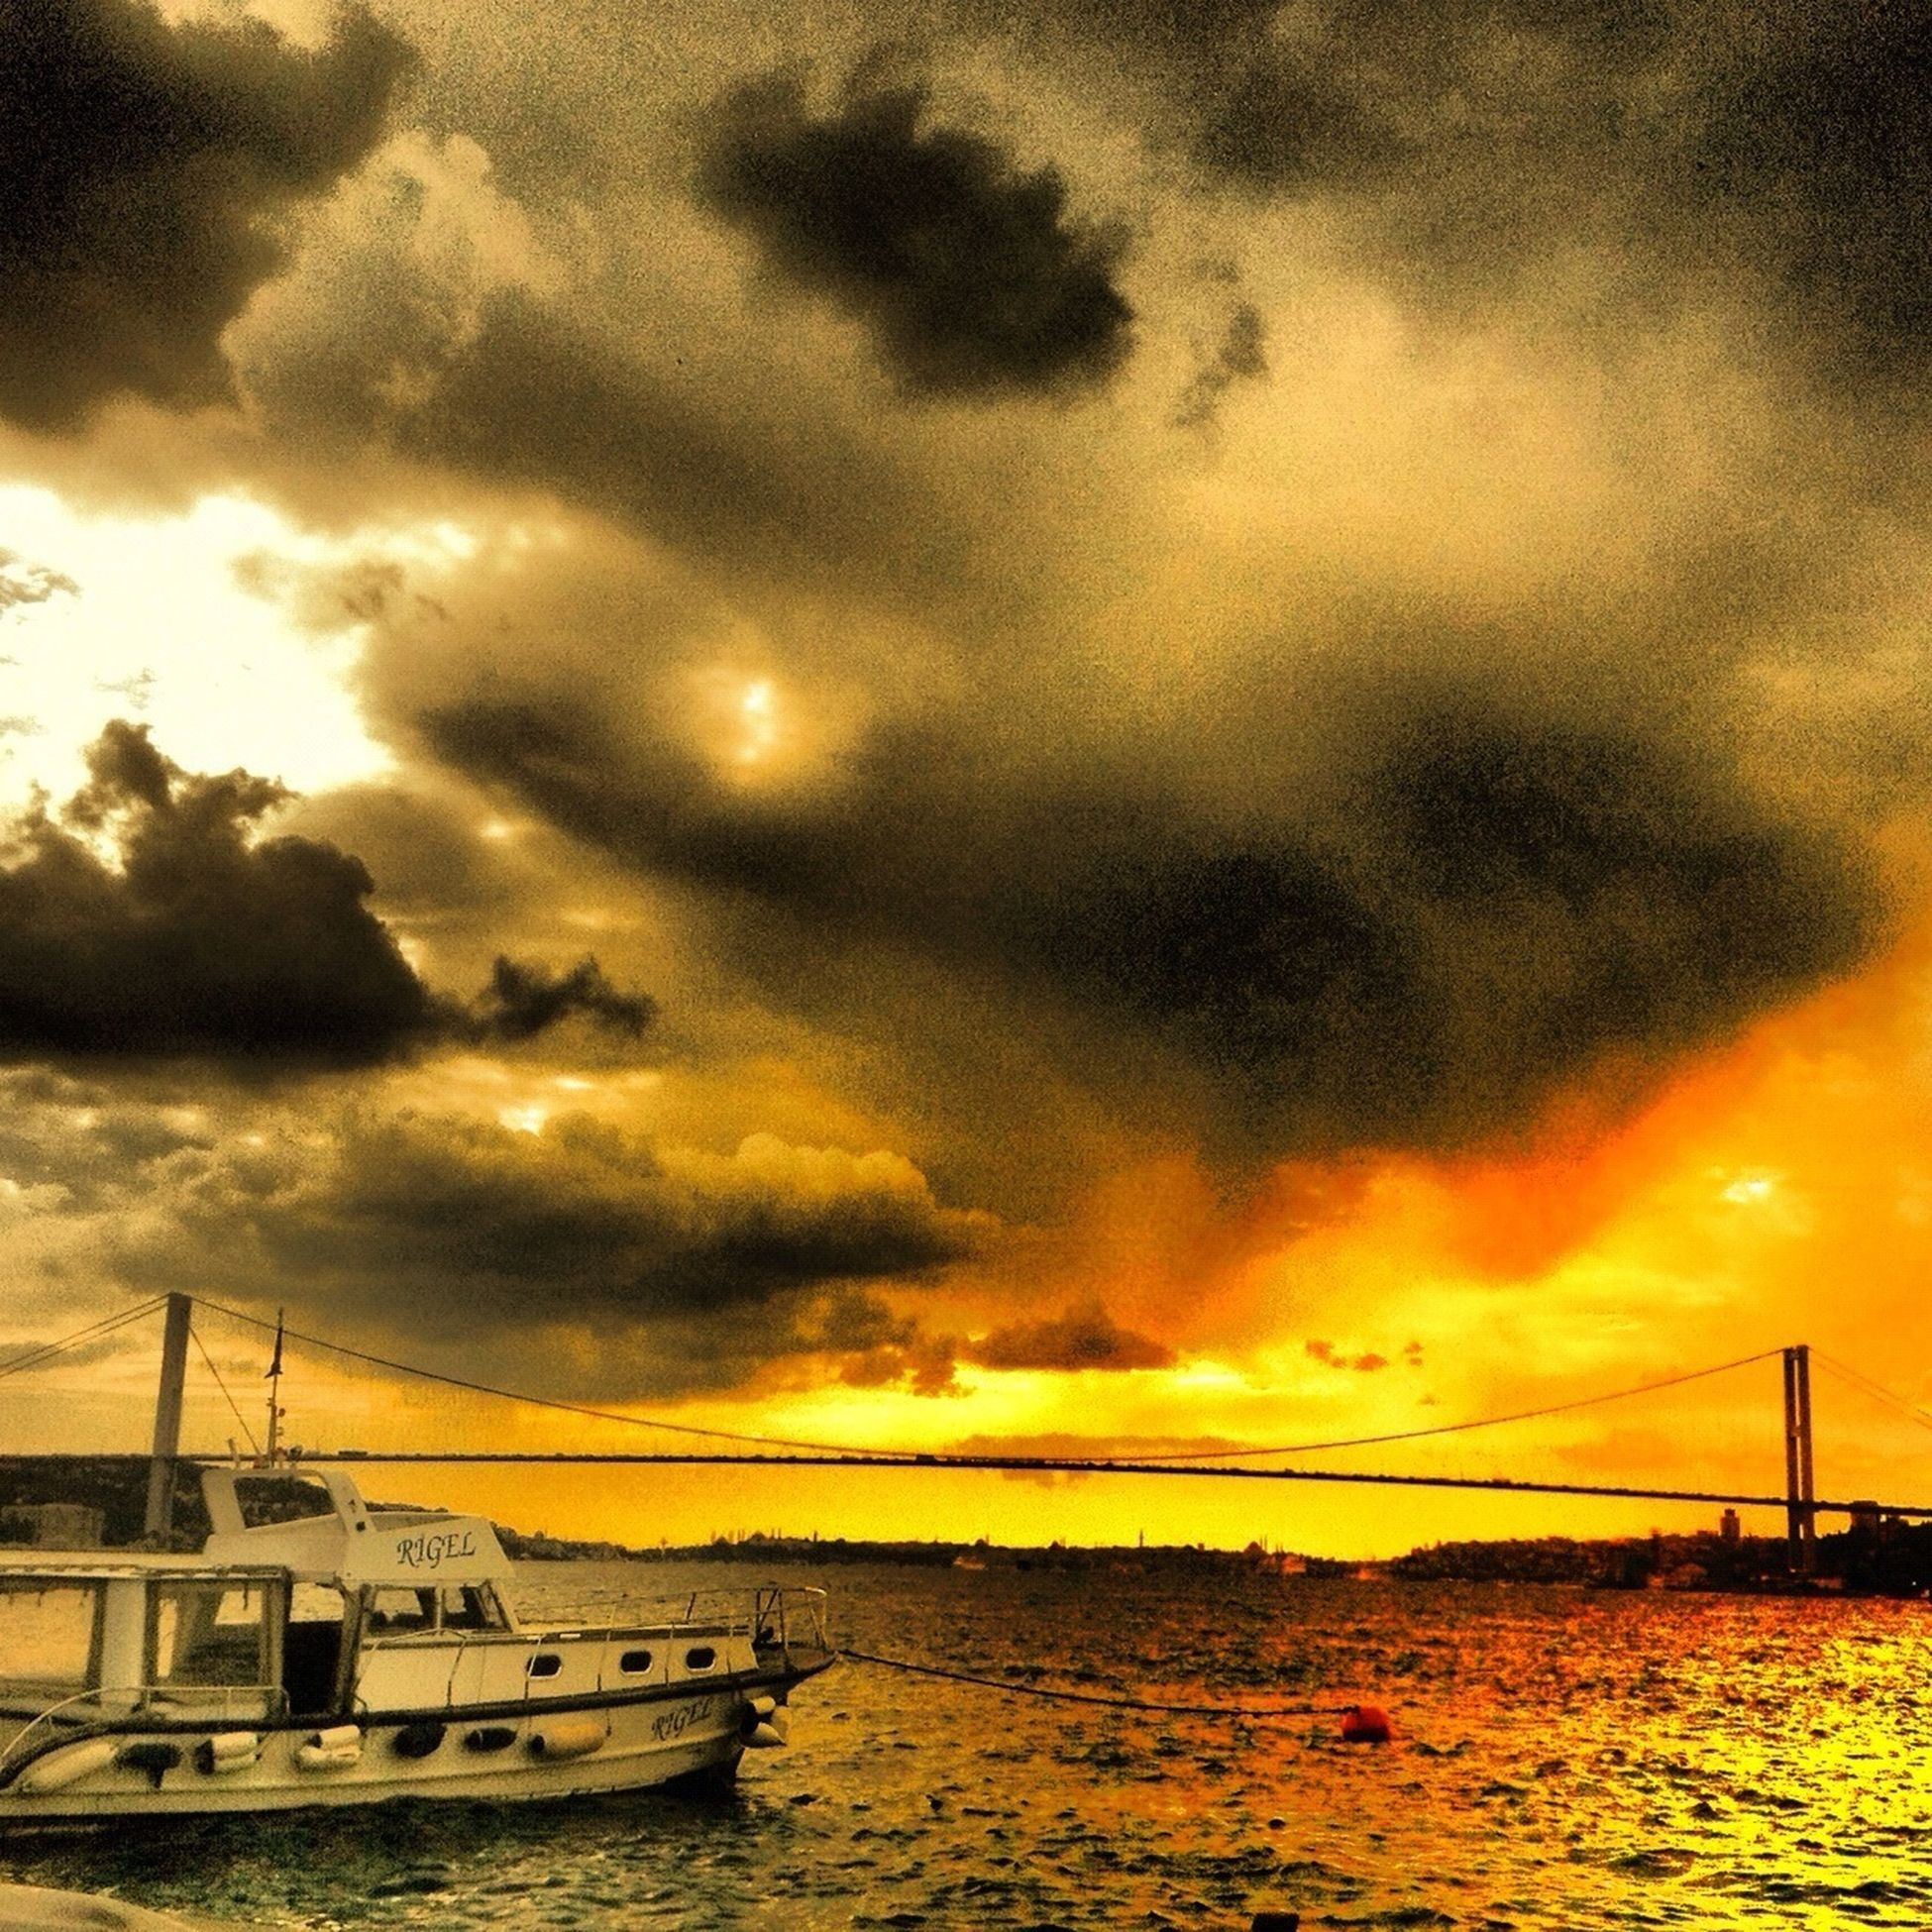 sunset, sky, cloud - sky, sea, water, scenics, cloudy, beauty in nature, tranquility, tranquil scene, dramatic sky, orange color, nature, idyllic, cloud, weather, transportation, overcast, waterfront, horizon over water